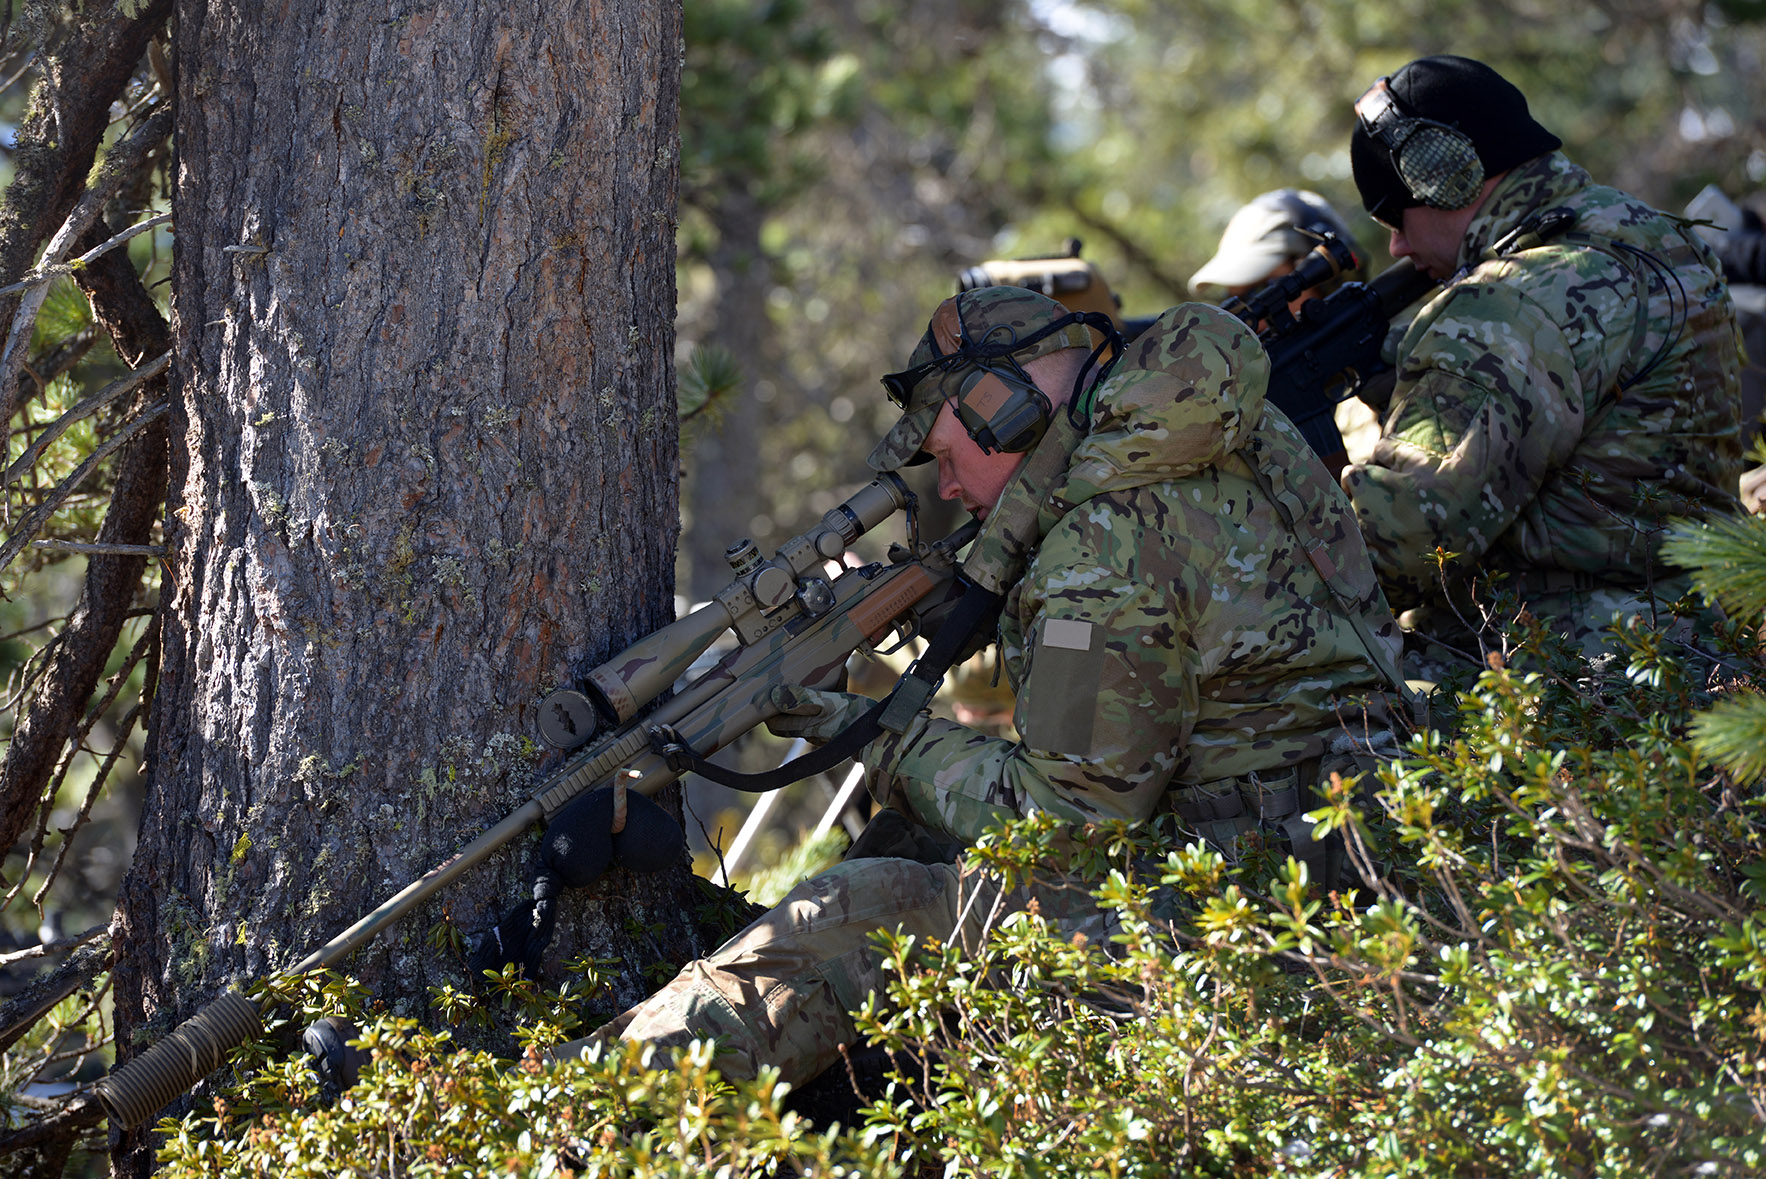 Multinational Soldiers from seven different countries participate in the Advanced High Angle Sniper Course conducted by the International Special Training Center, April 27-May 1, 2015 in Lizum, Austria